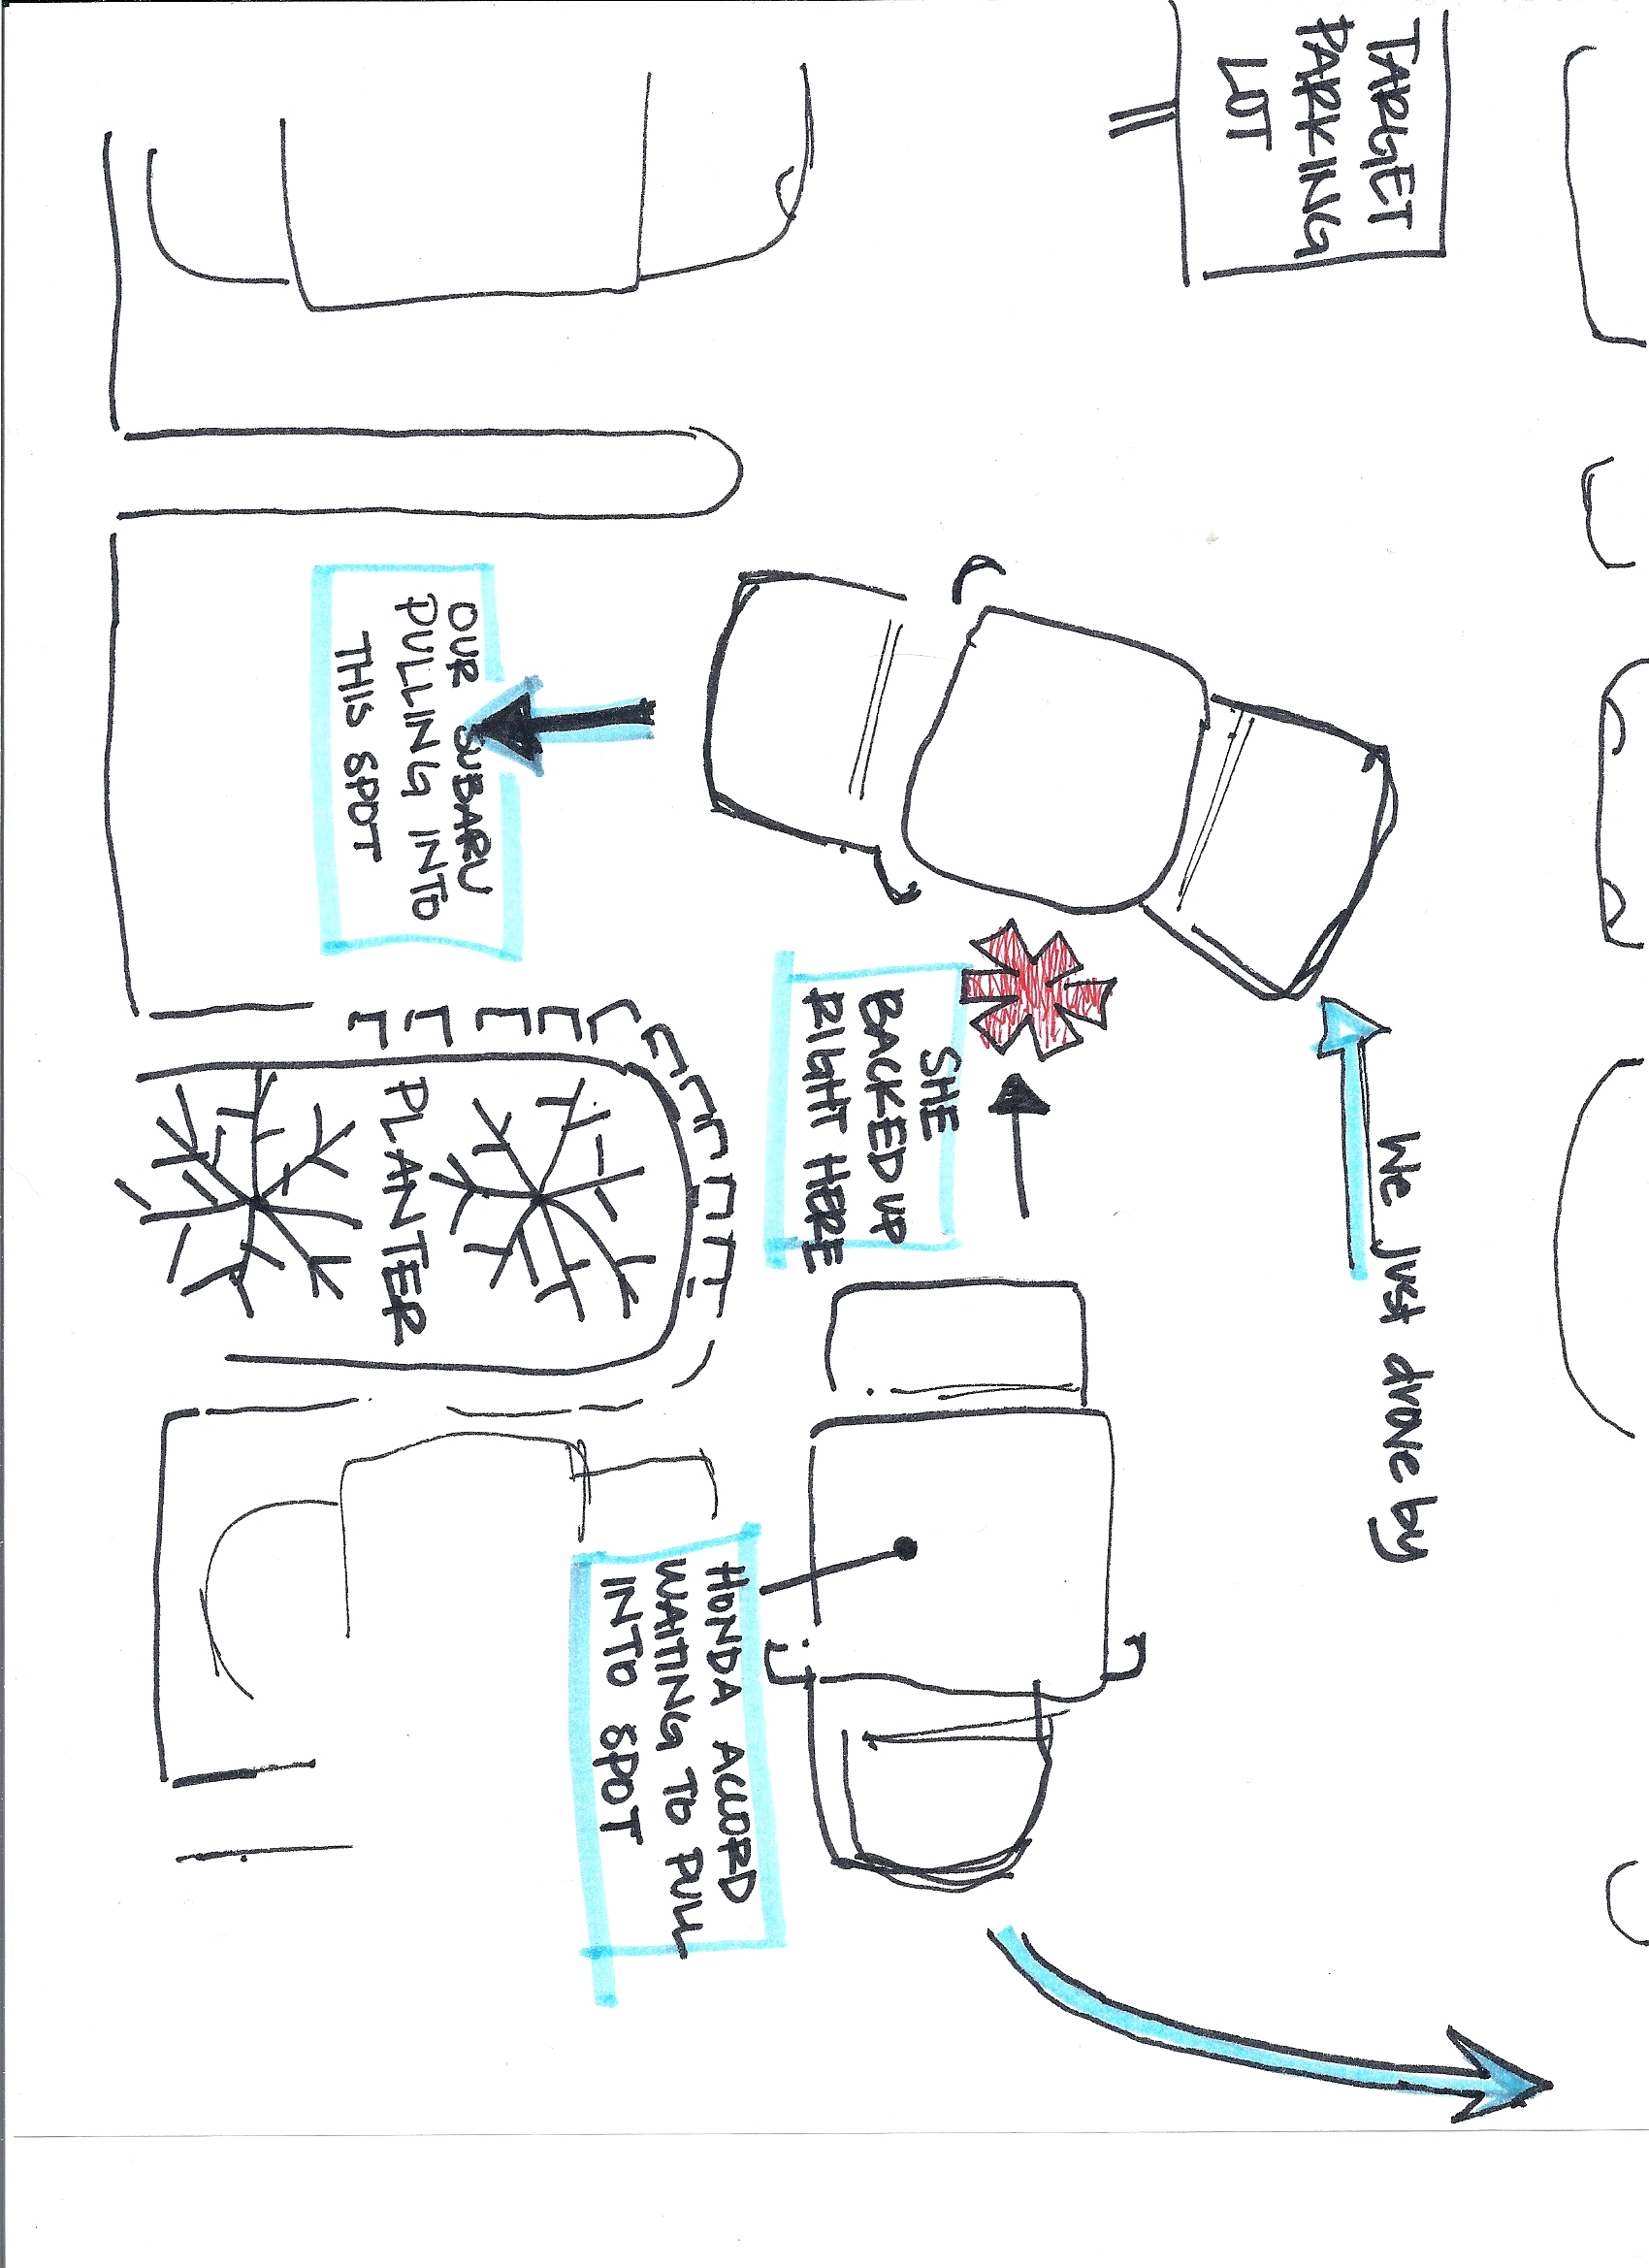 Car Accident Blank Diagram